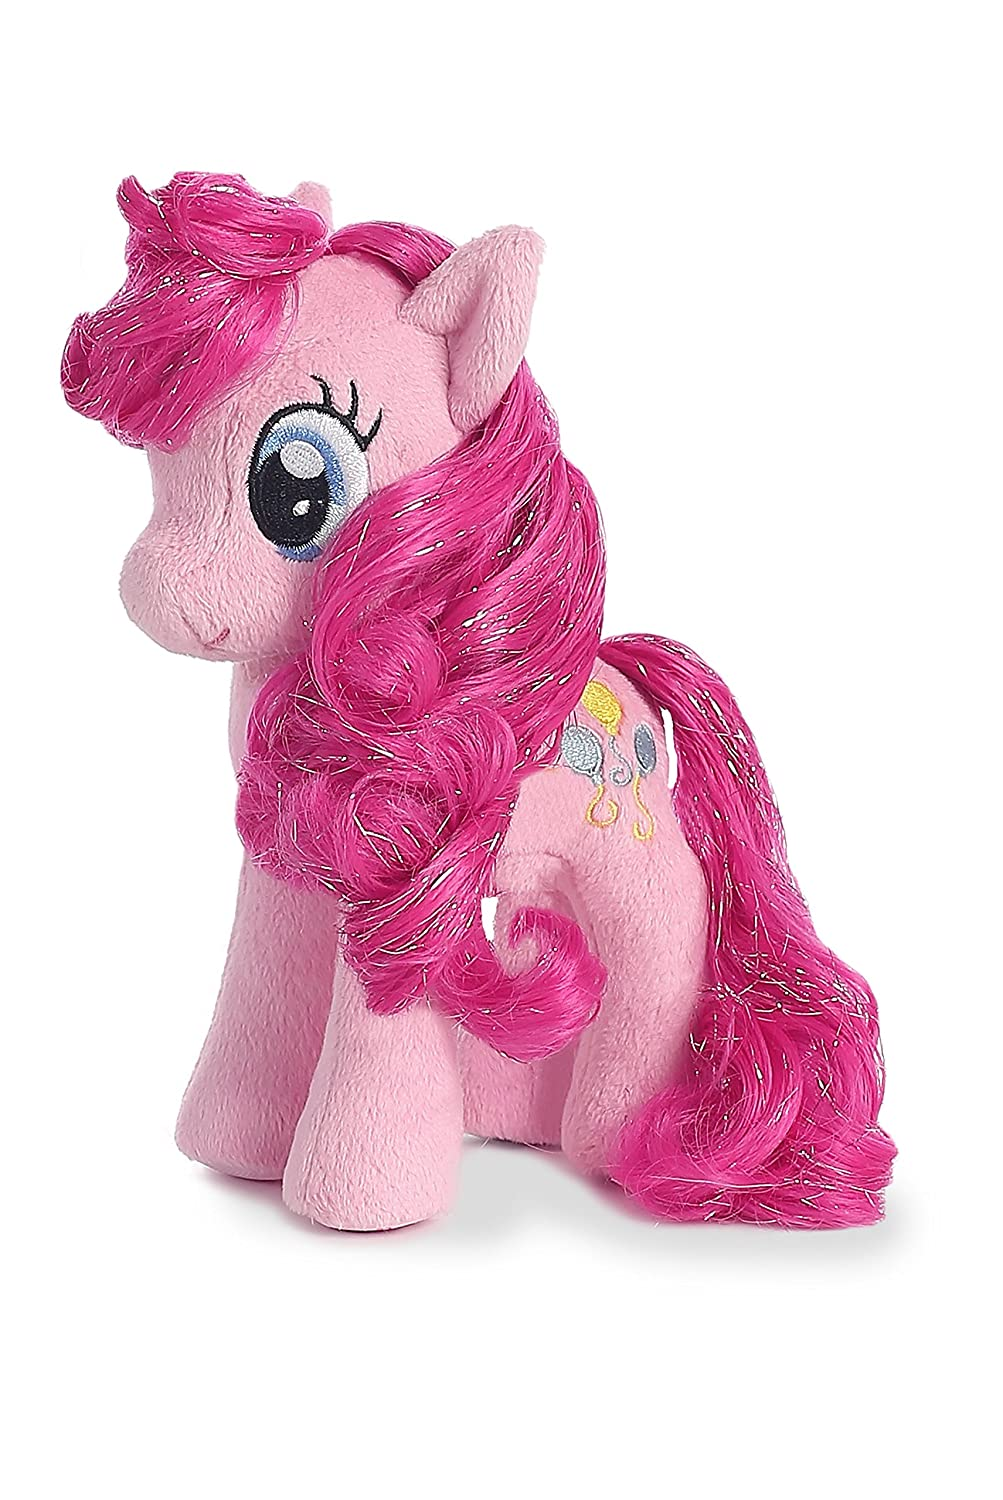 Aurora World My Little Pony Pinkie Pie Pink Horse 6.5 Inch Plush